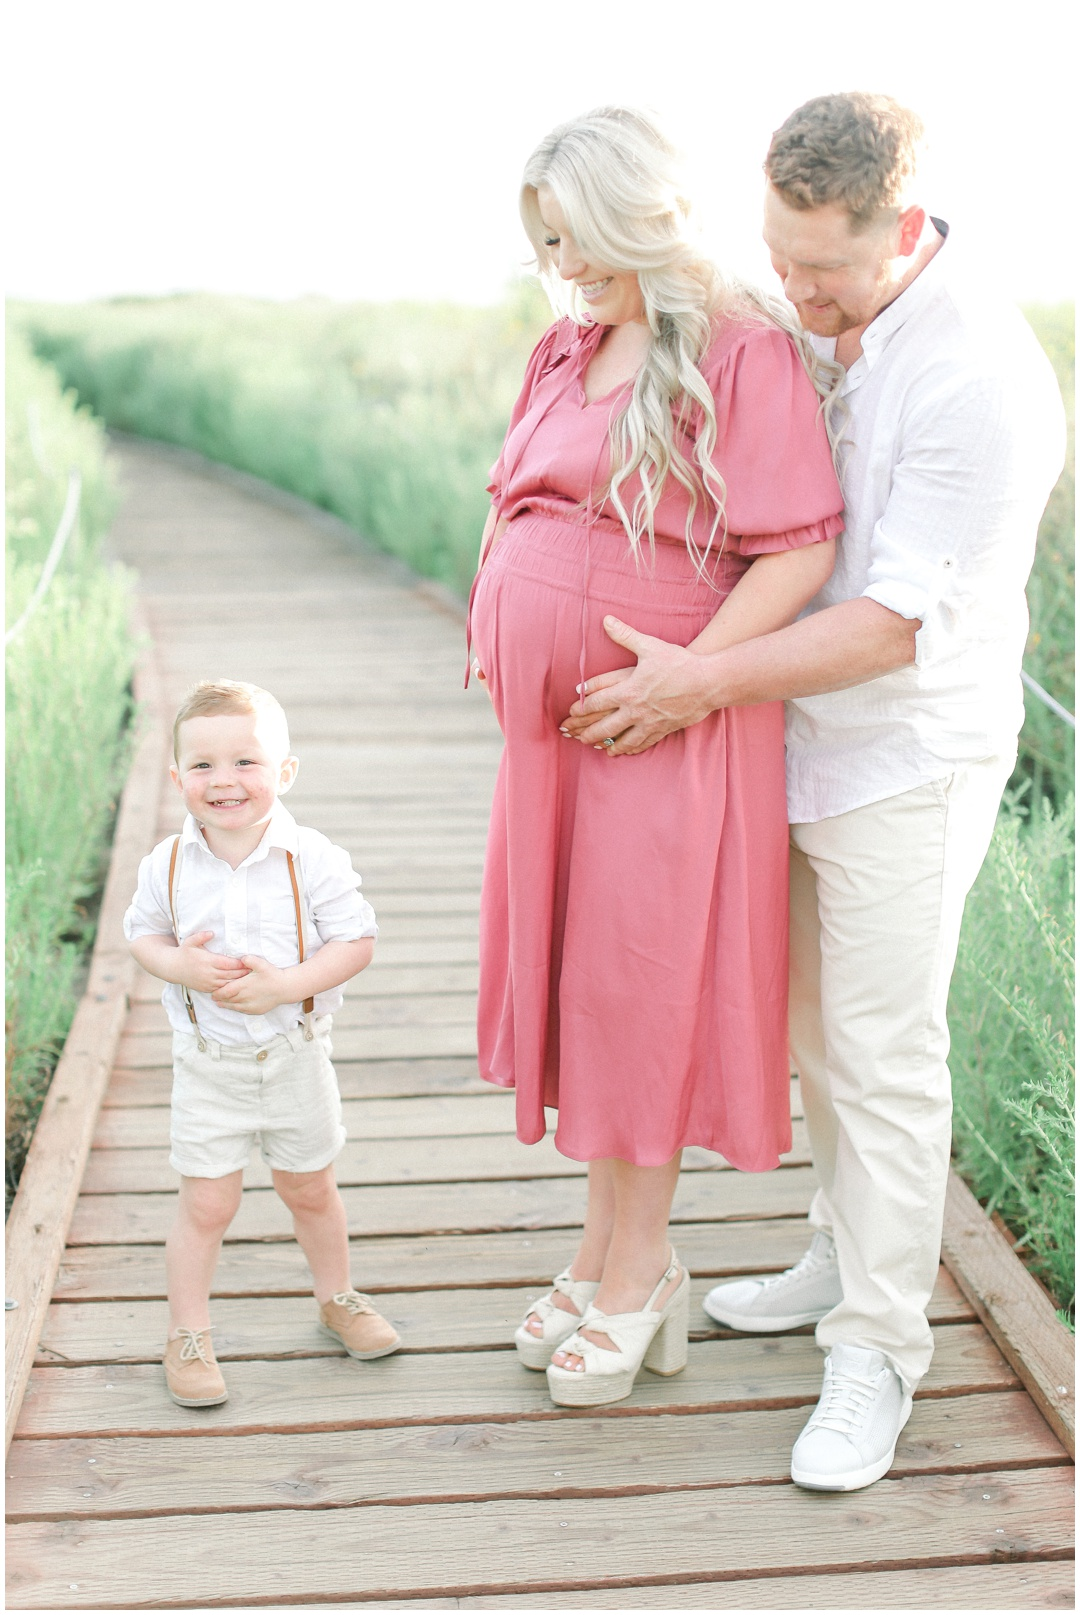 Newport_Beach_Newborn_Light_Airy_Natural_Photographer_Newport_Beach_Photographer_Orange_County_Family_Photographer_Cori_Kleckner_Photography_Newport_Beach_Photographer_Maternity_kole_calhoun56_kole_calhoun_Jennifer_Calhoun_Knox_Calhoun_3748.jpg